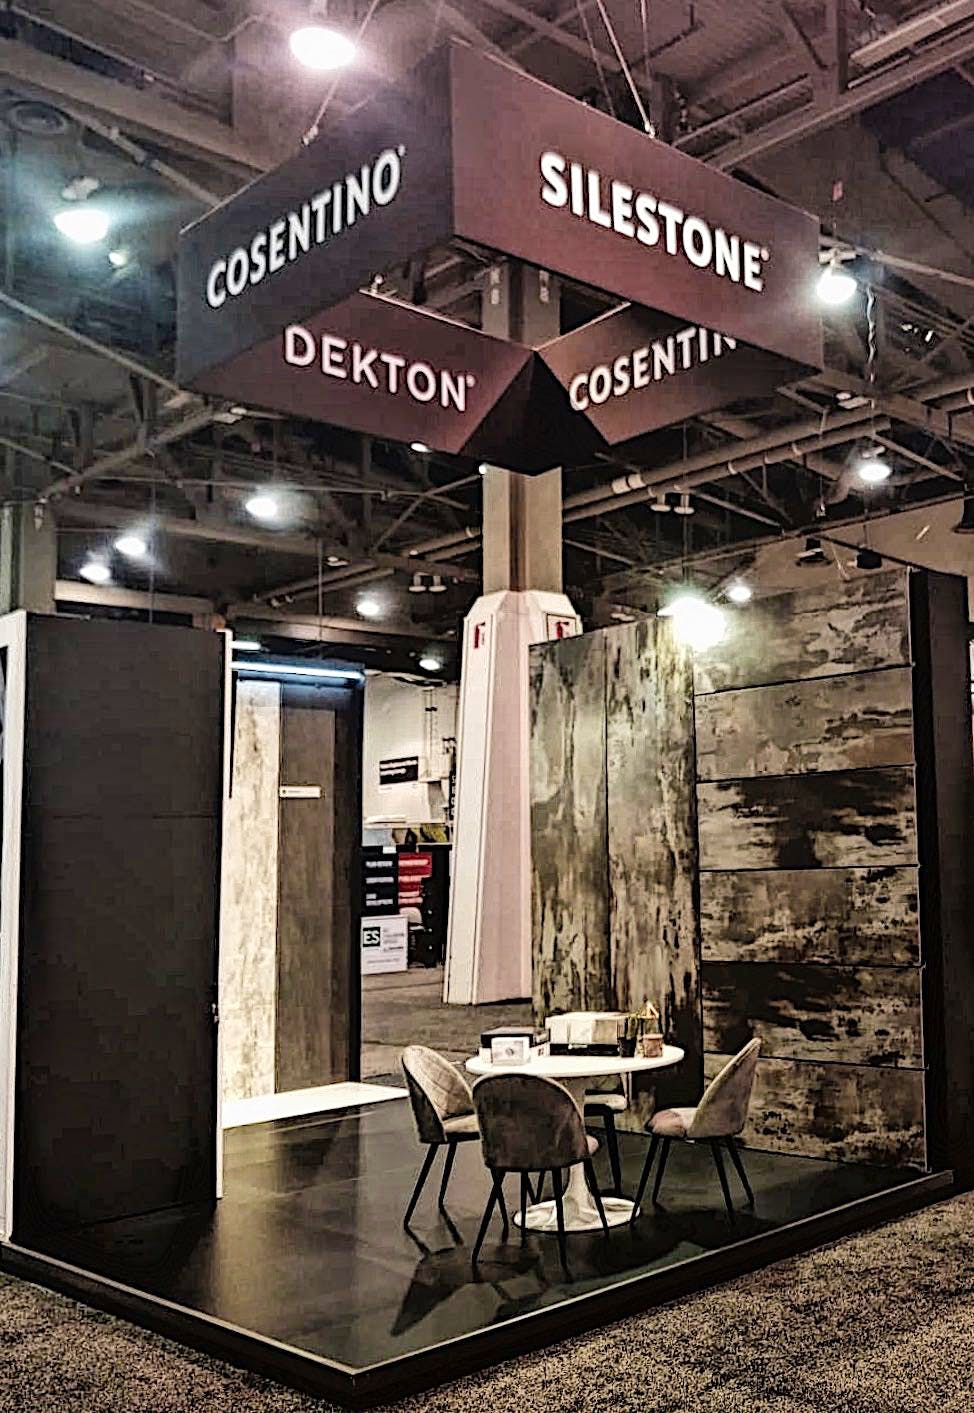 Image of 3AEAD2ED A5AA 4352 843E 7CB8B3757305 2 in Cosentino present at the American Institute of Architects National Convention - Cosentino